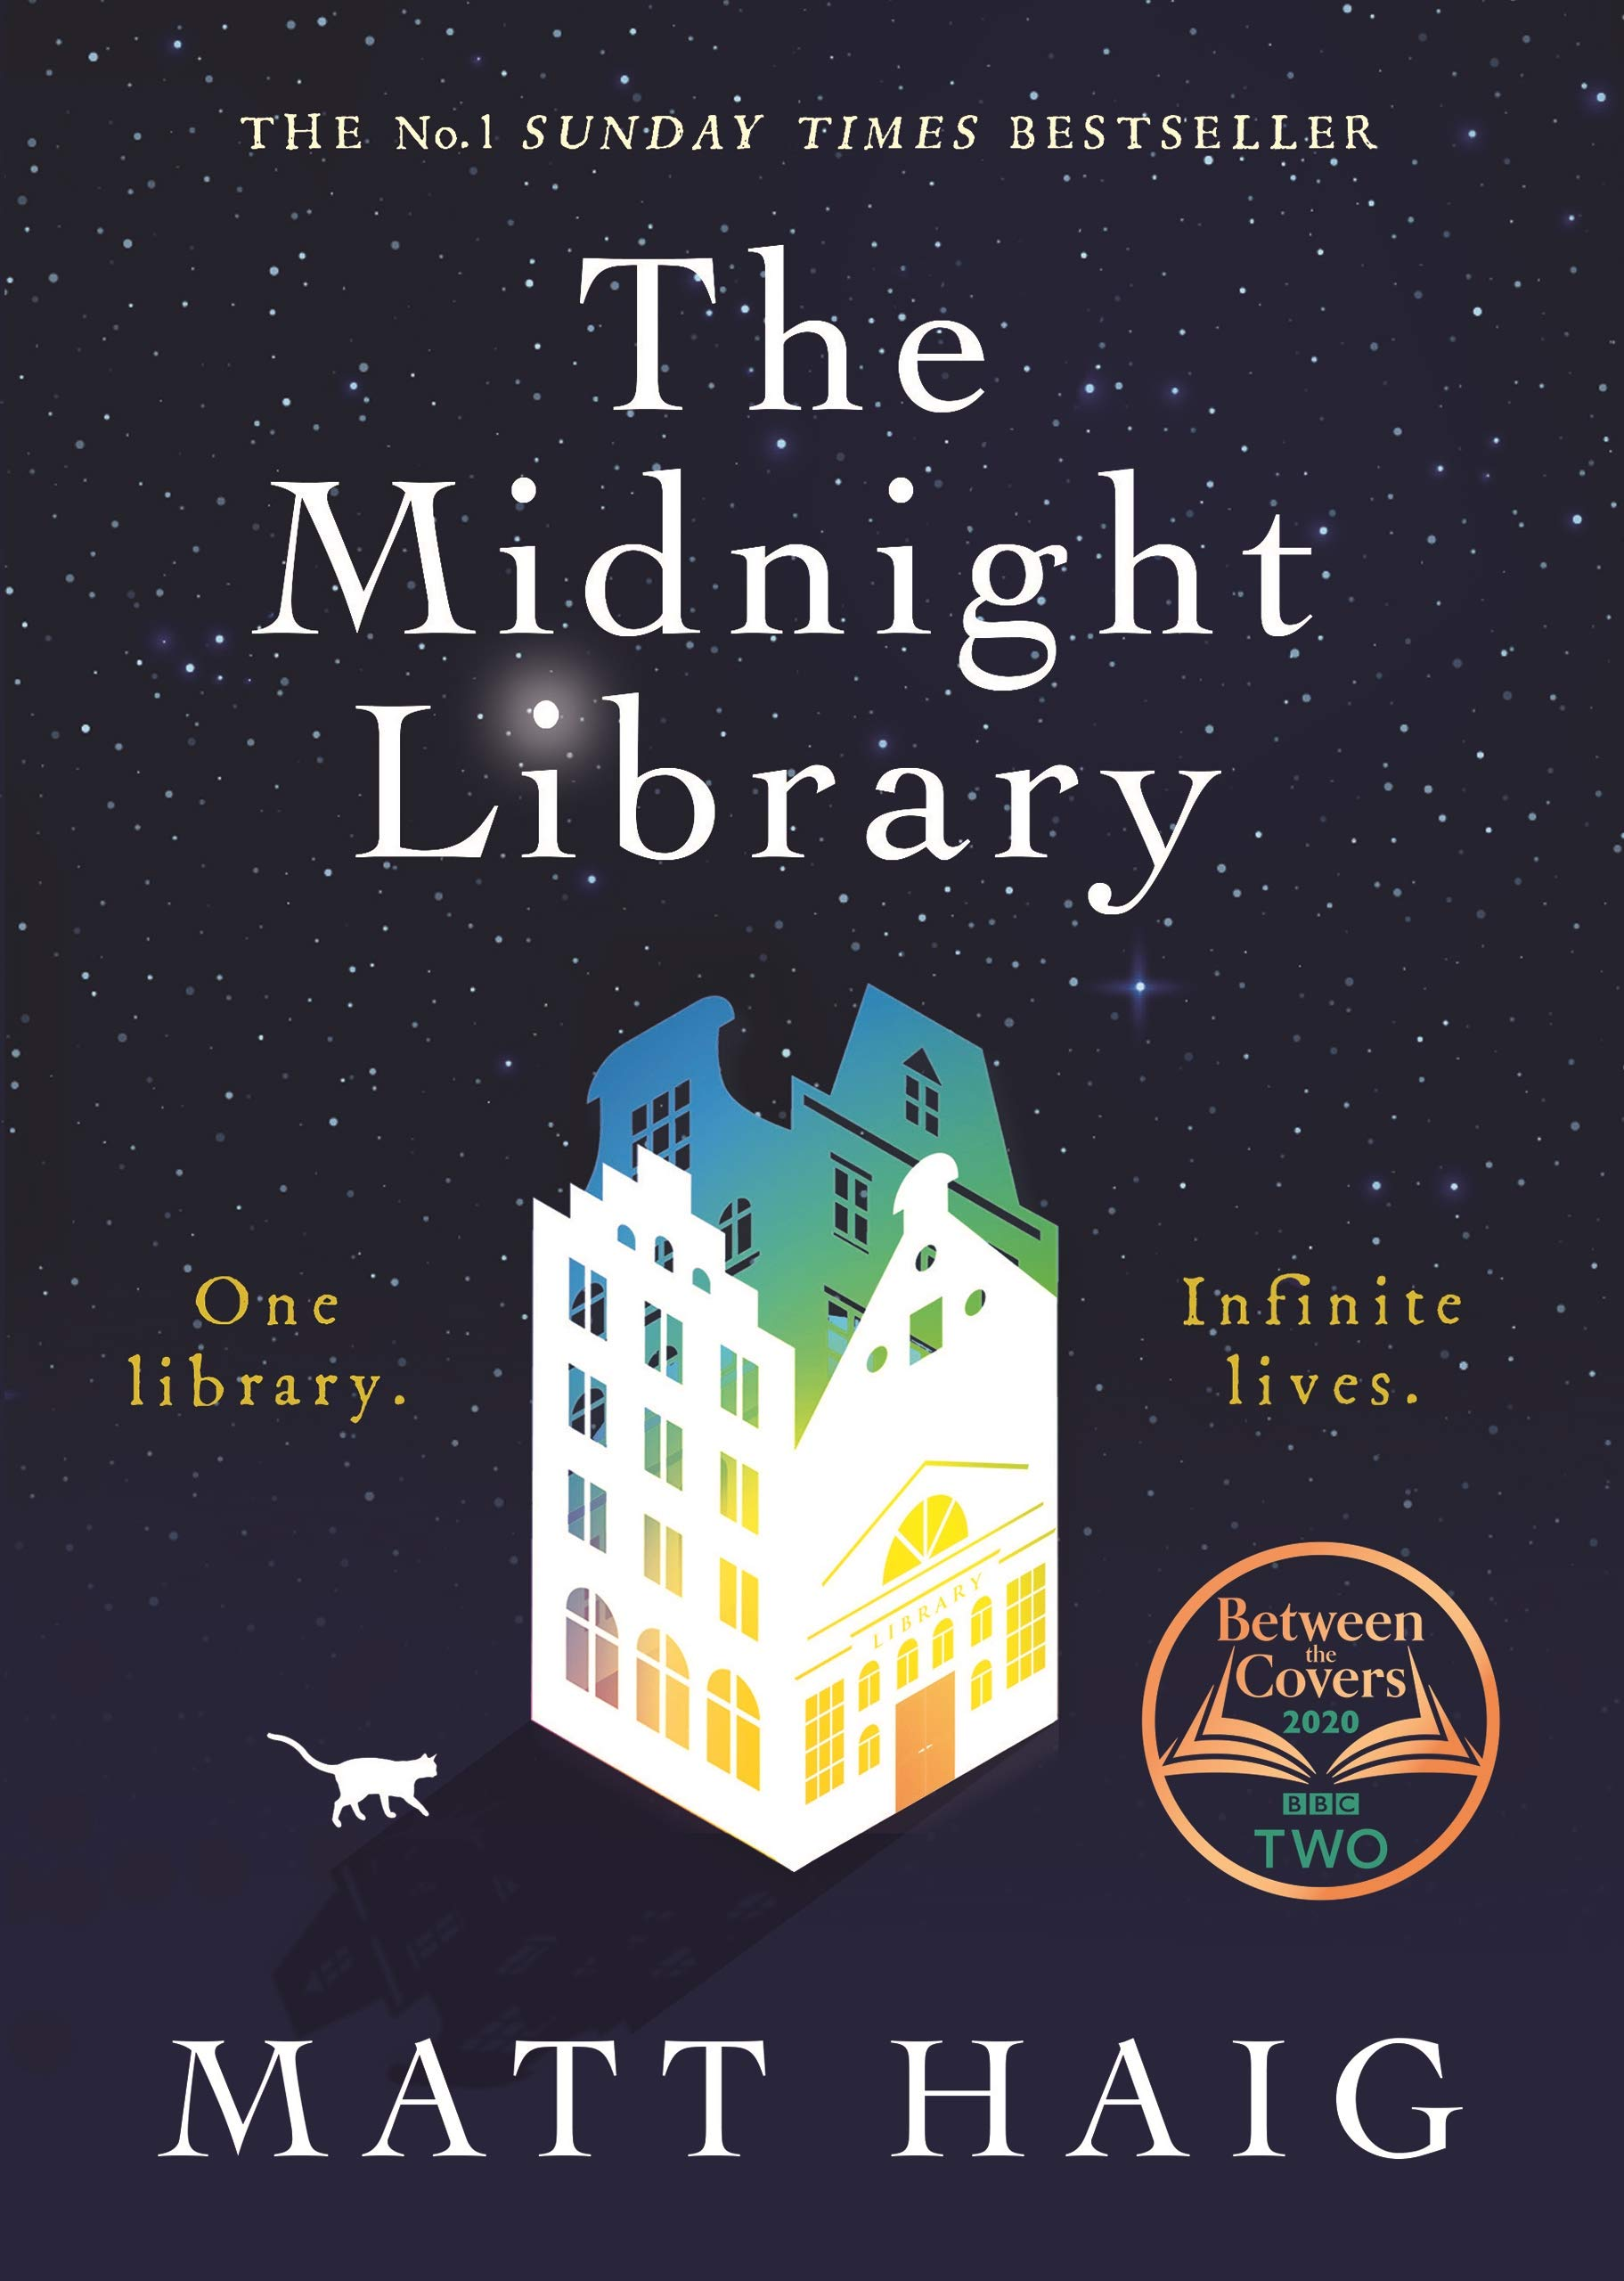 Buy The Midnight Library Book Online at Low Prices in India | The Midnight  Library Reviews & Ratings - Amazon.in